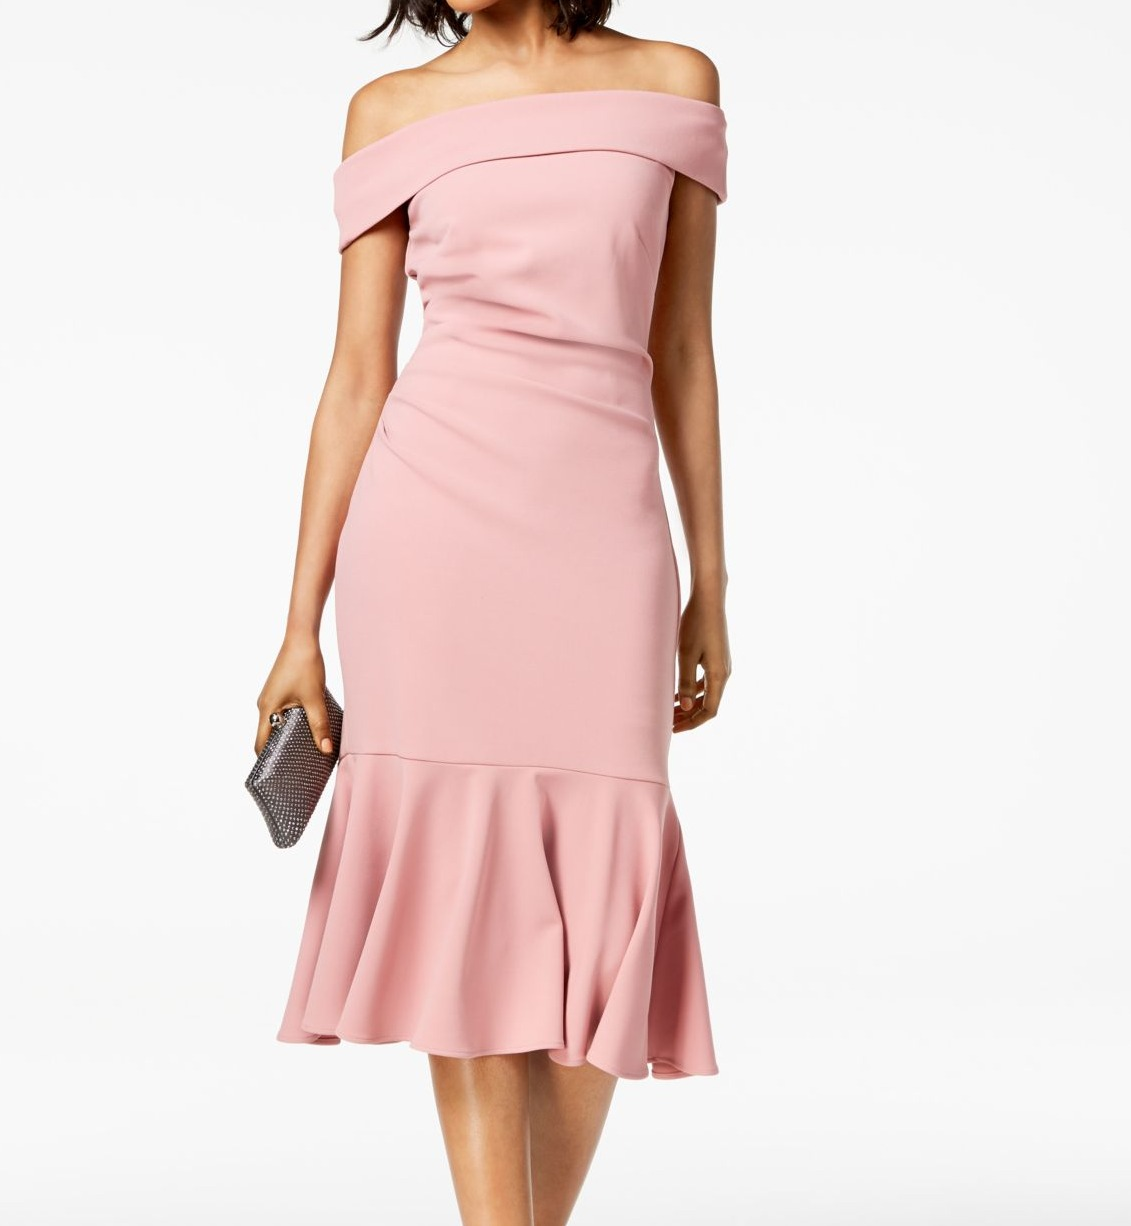 Vince-Camuto-Women-039-s-Dress-Pink-Size-8-Sheath-Off-Shoulder-Flounce